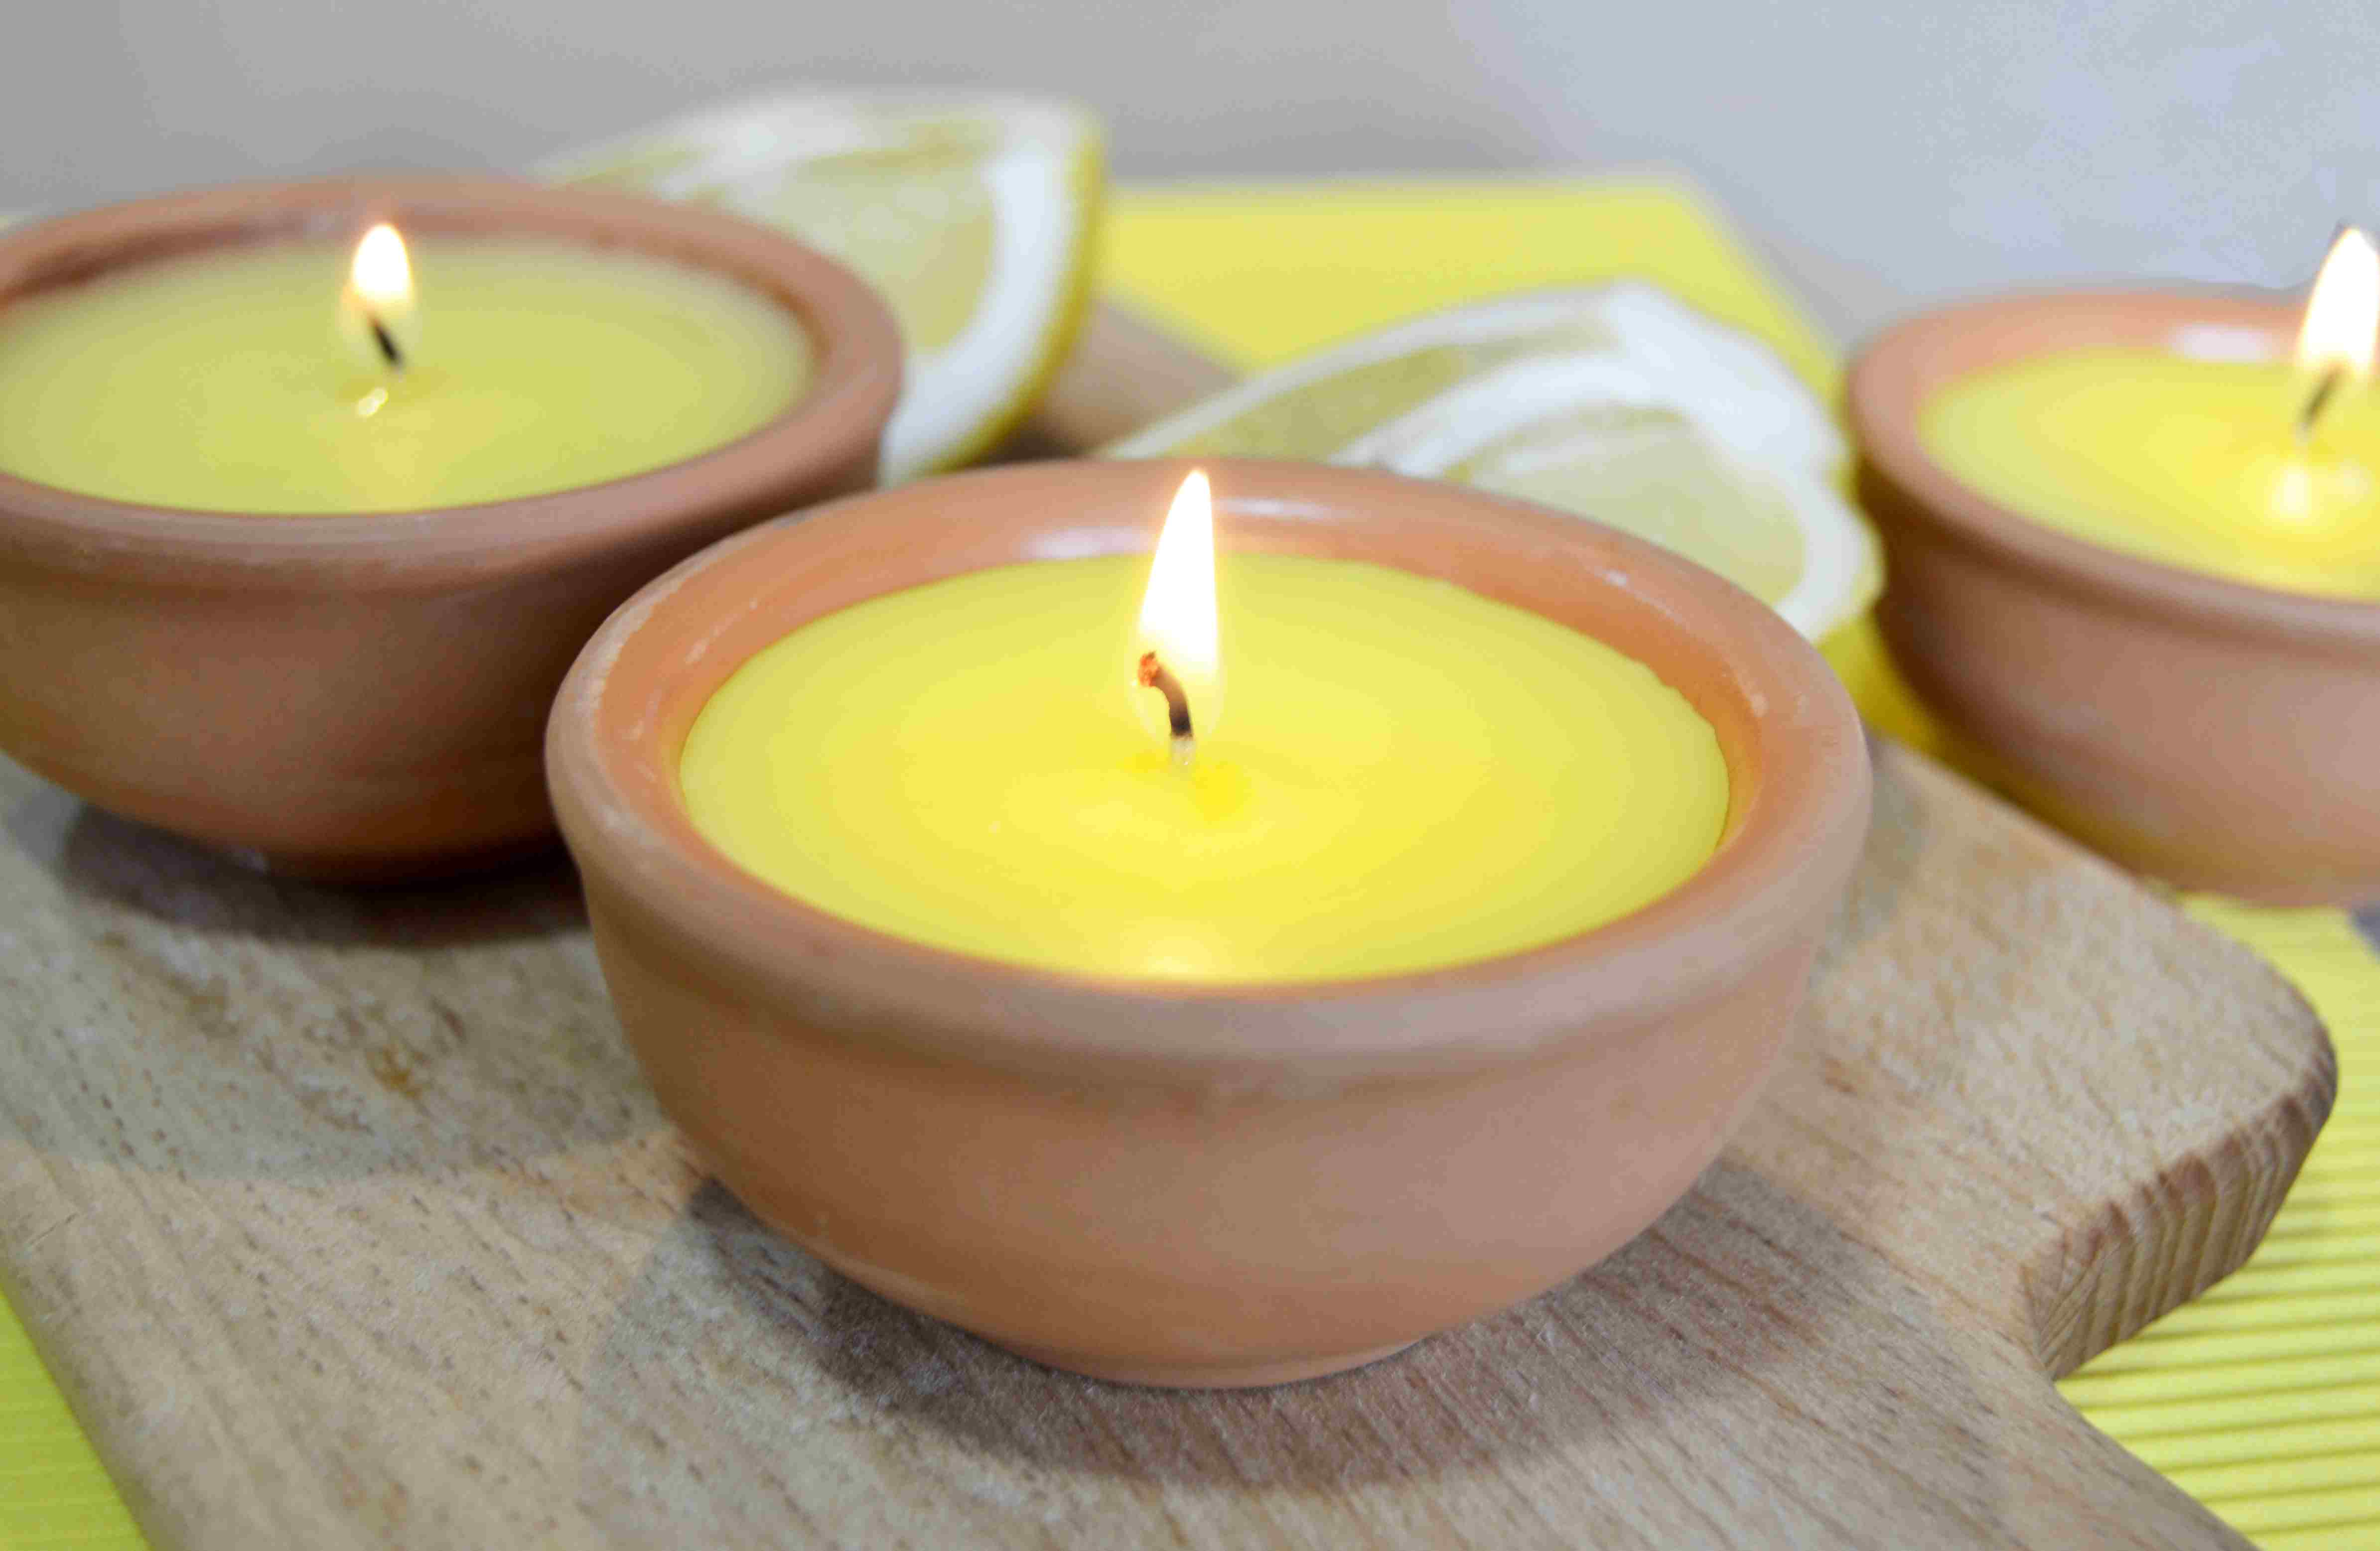 It's the smoke from citronella candles that repels mosquitoes, not the compound. The carbon dioxide from combustion actually attracts them.